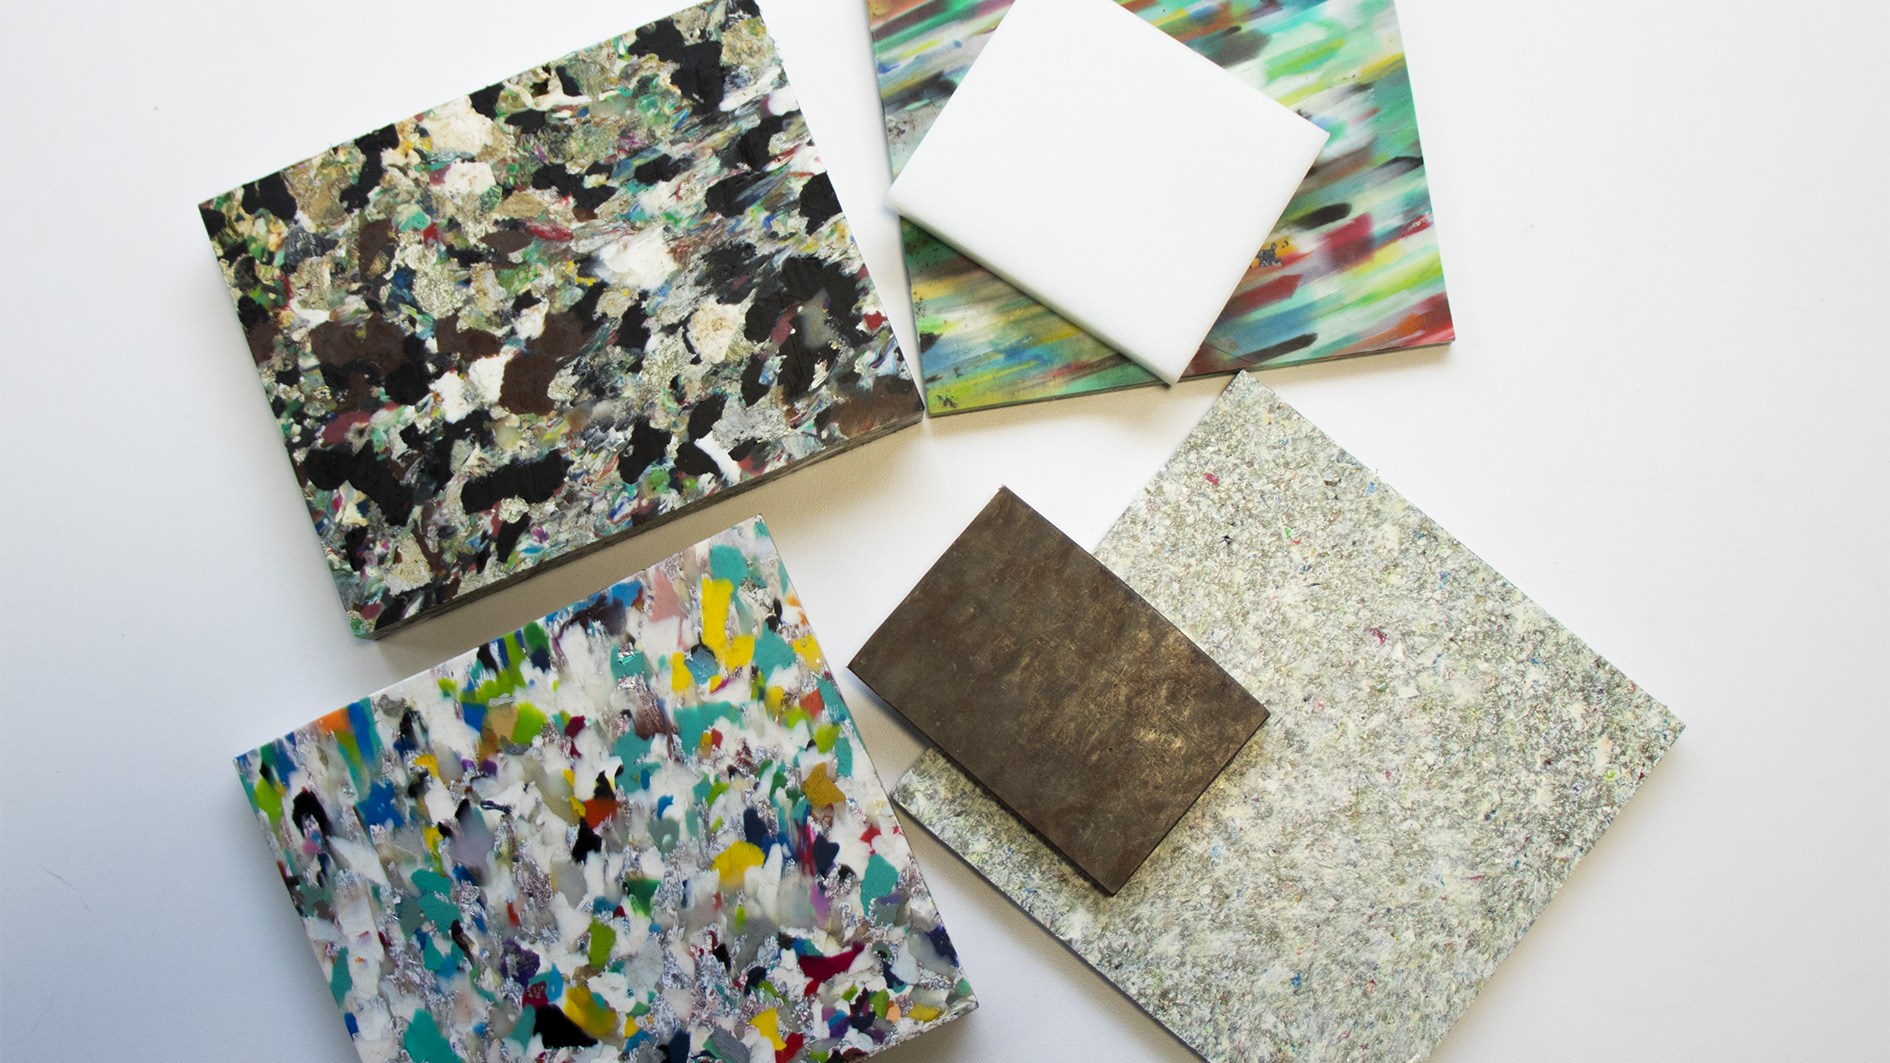 Gallery Sustainable Building Materials 4